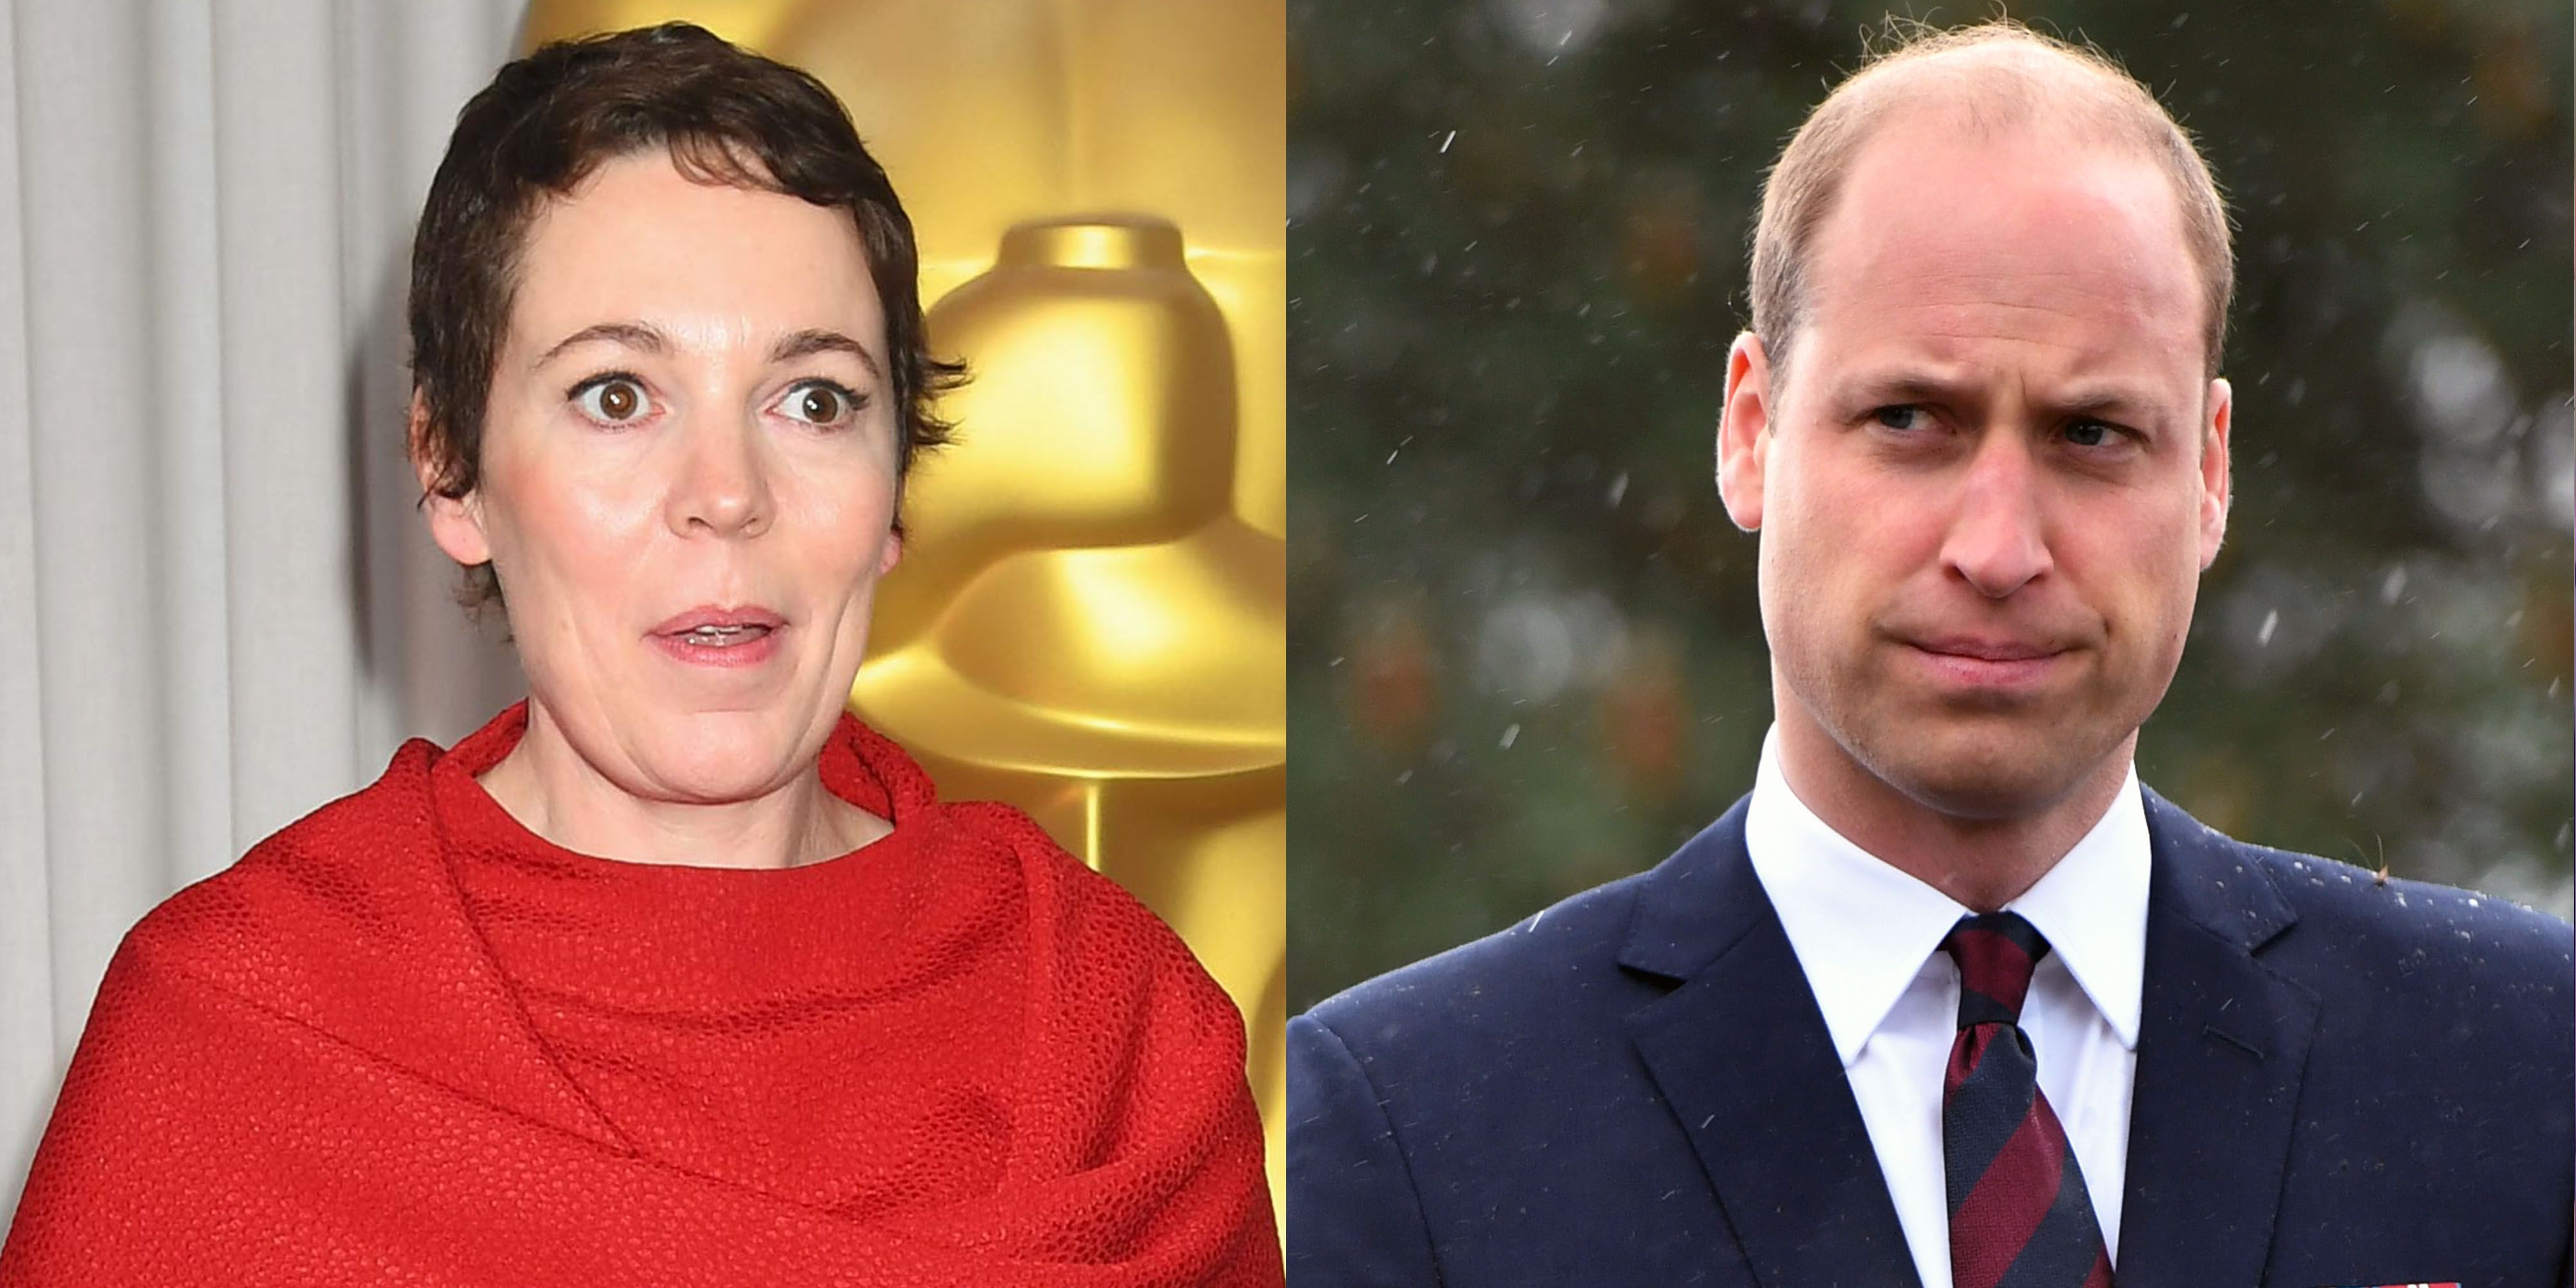 Prince William Told Olivia Colman He Does Not Watch 'The Crown'